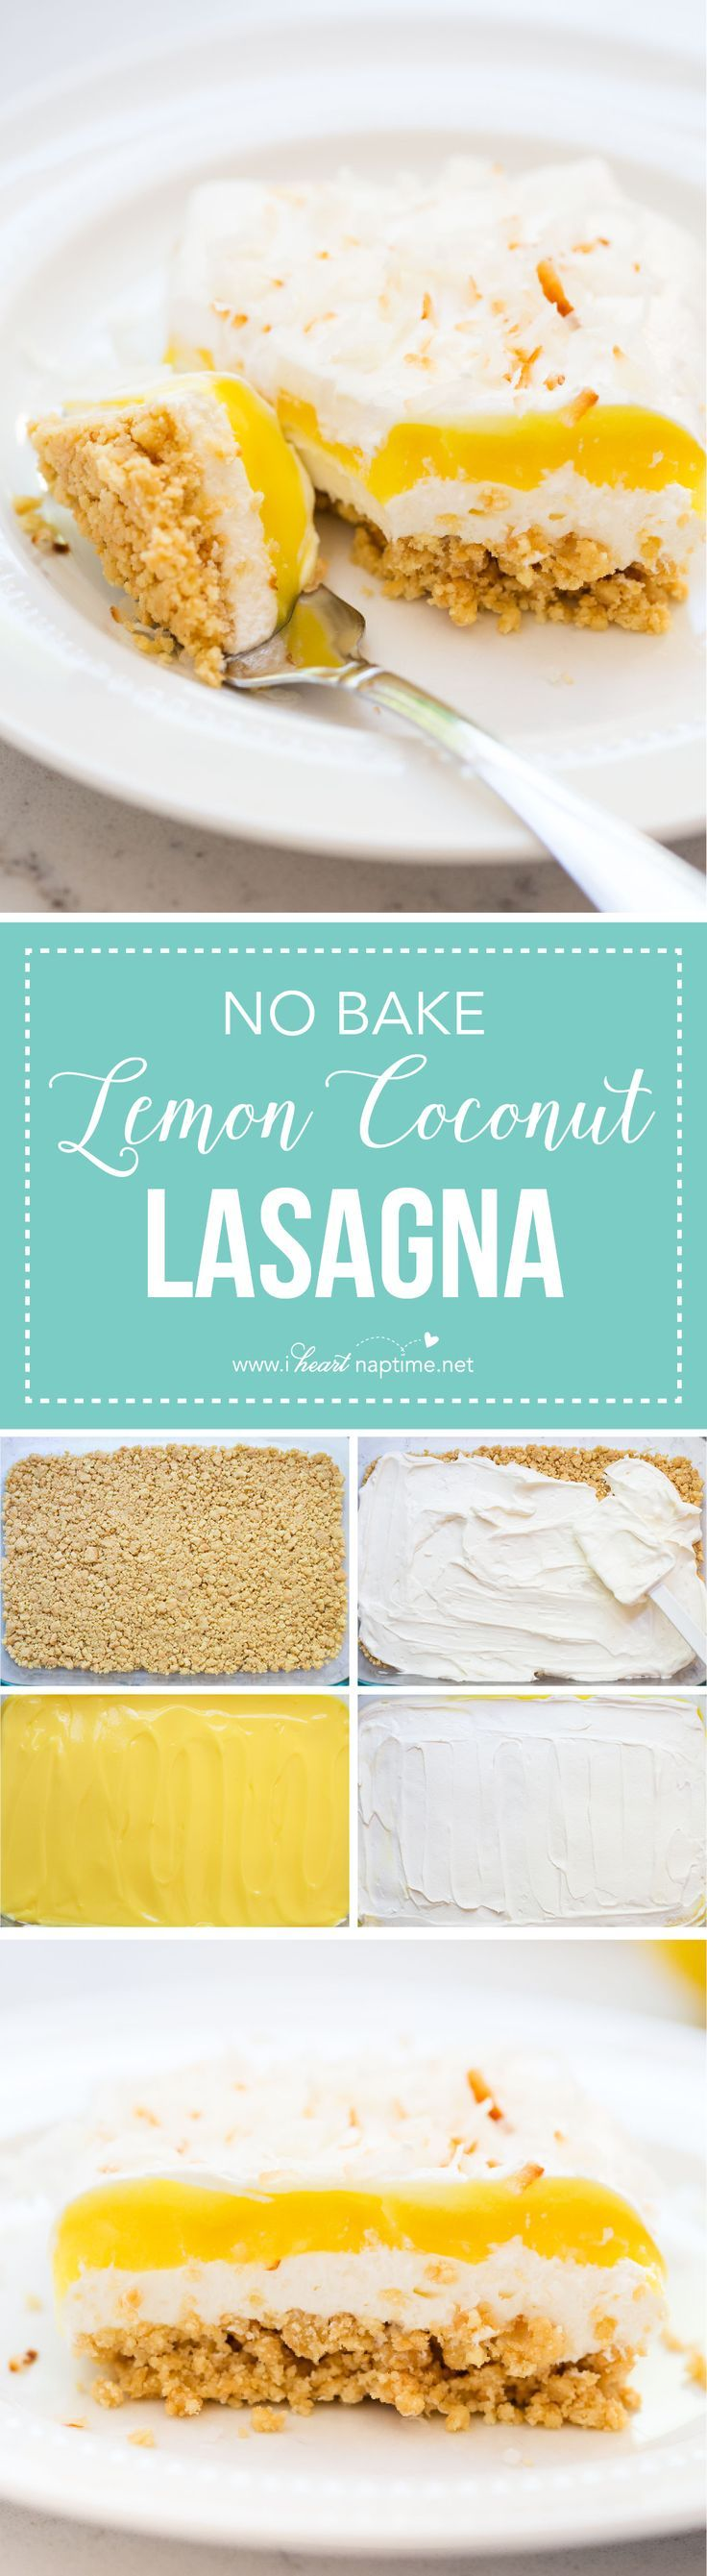 NO BAKE Lemon Coconut Cream Dessert Lasagna... a delicious and easy end-of-summer treat perfect year round!